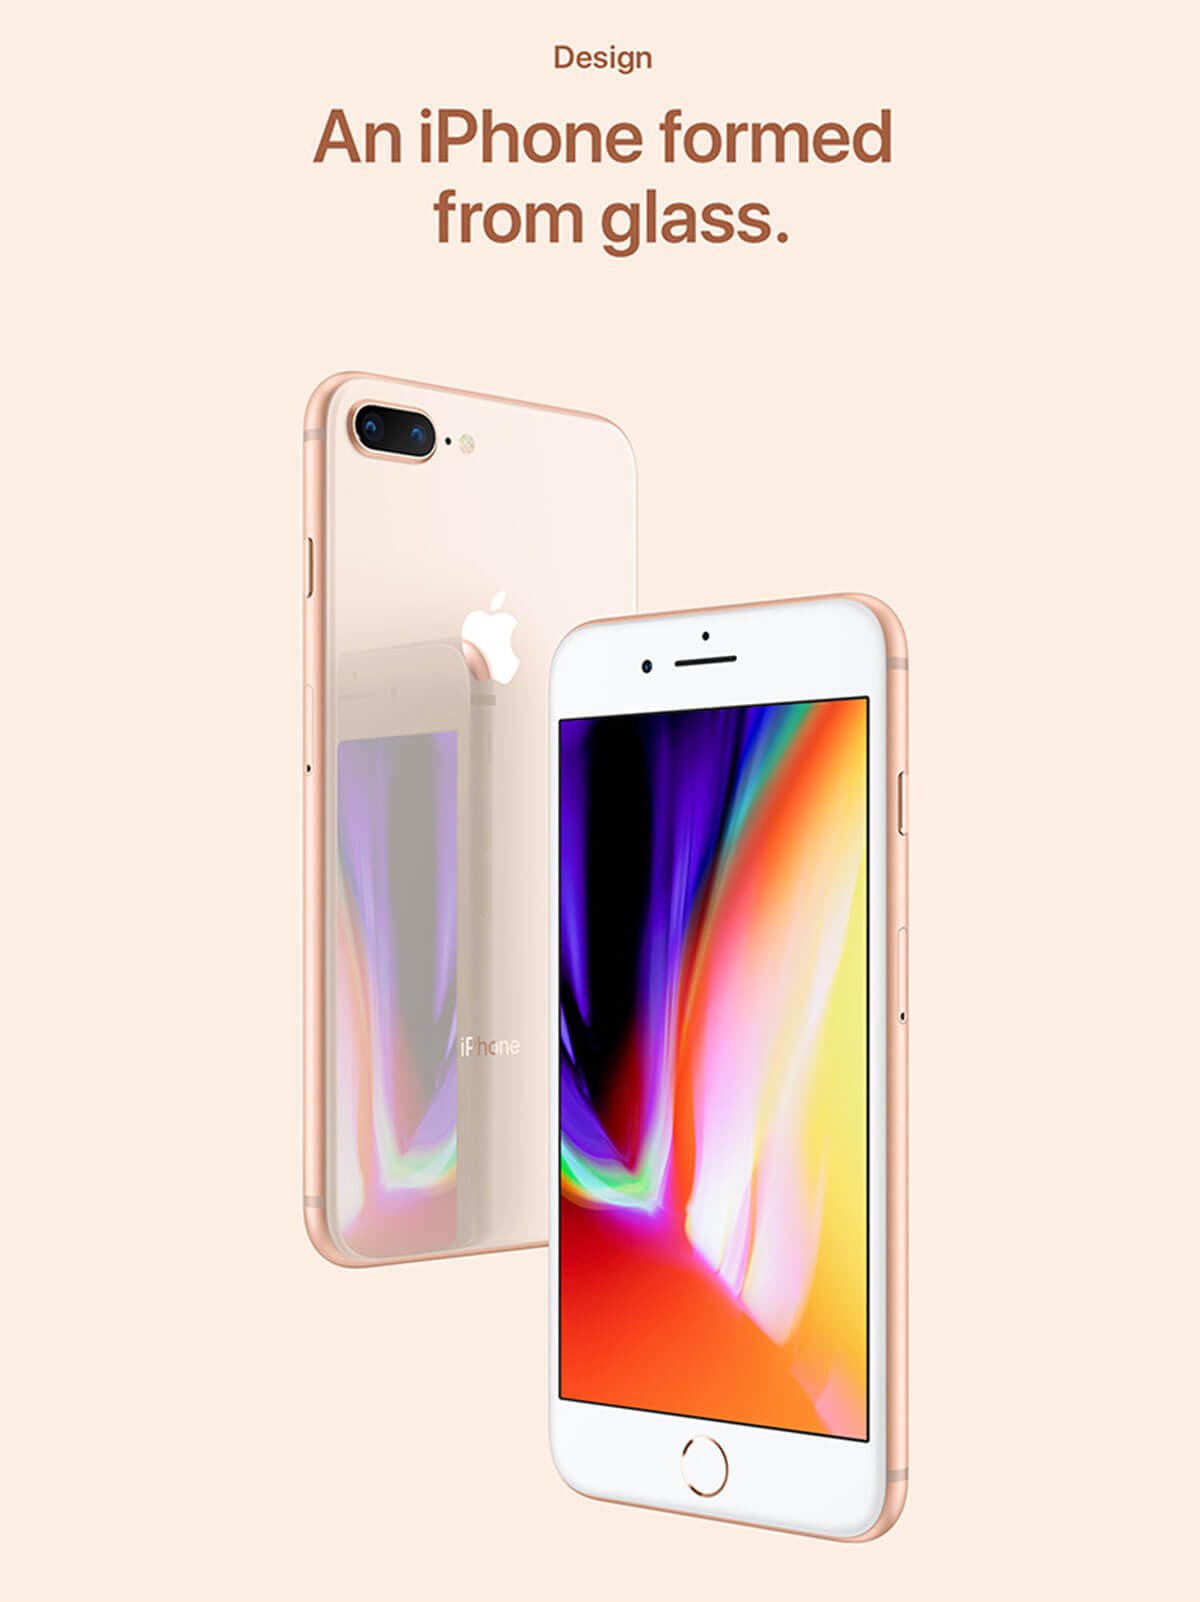 iPhone 8 Plus front and back design